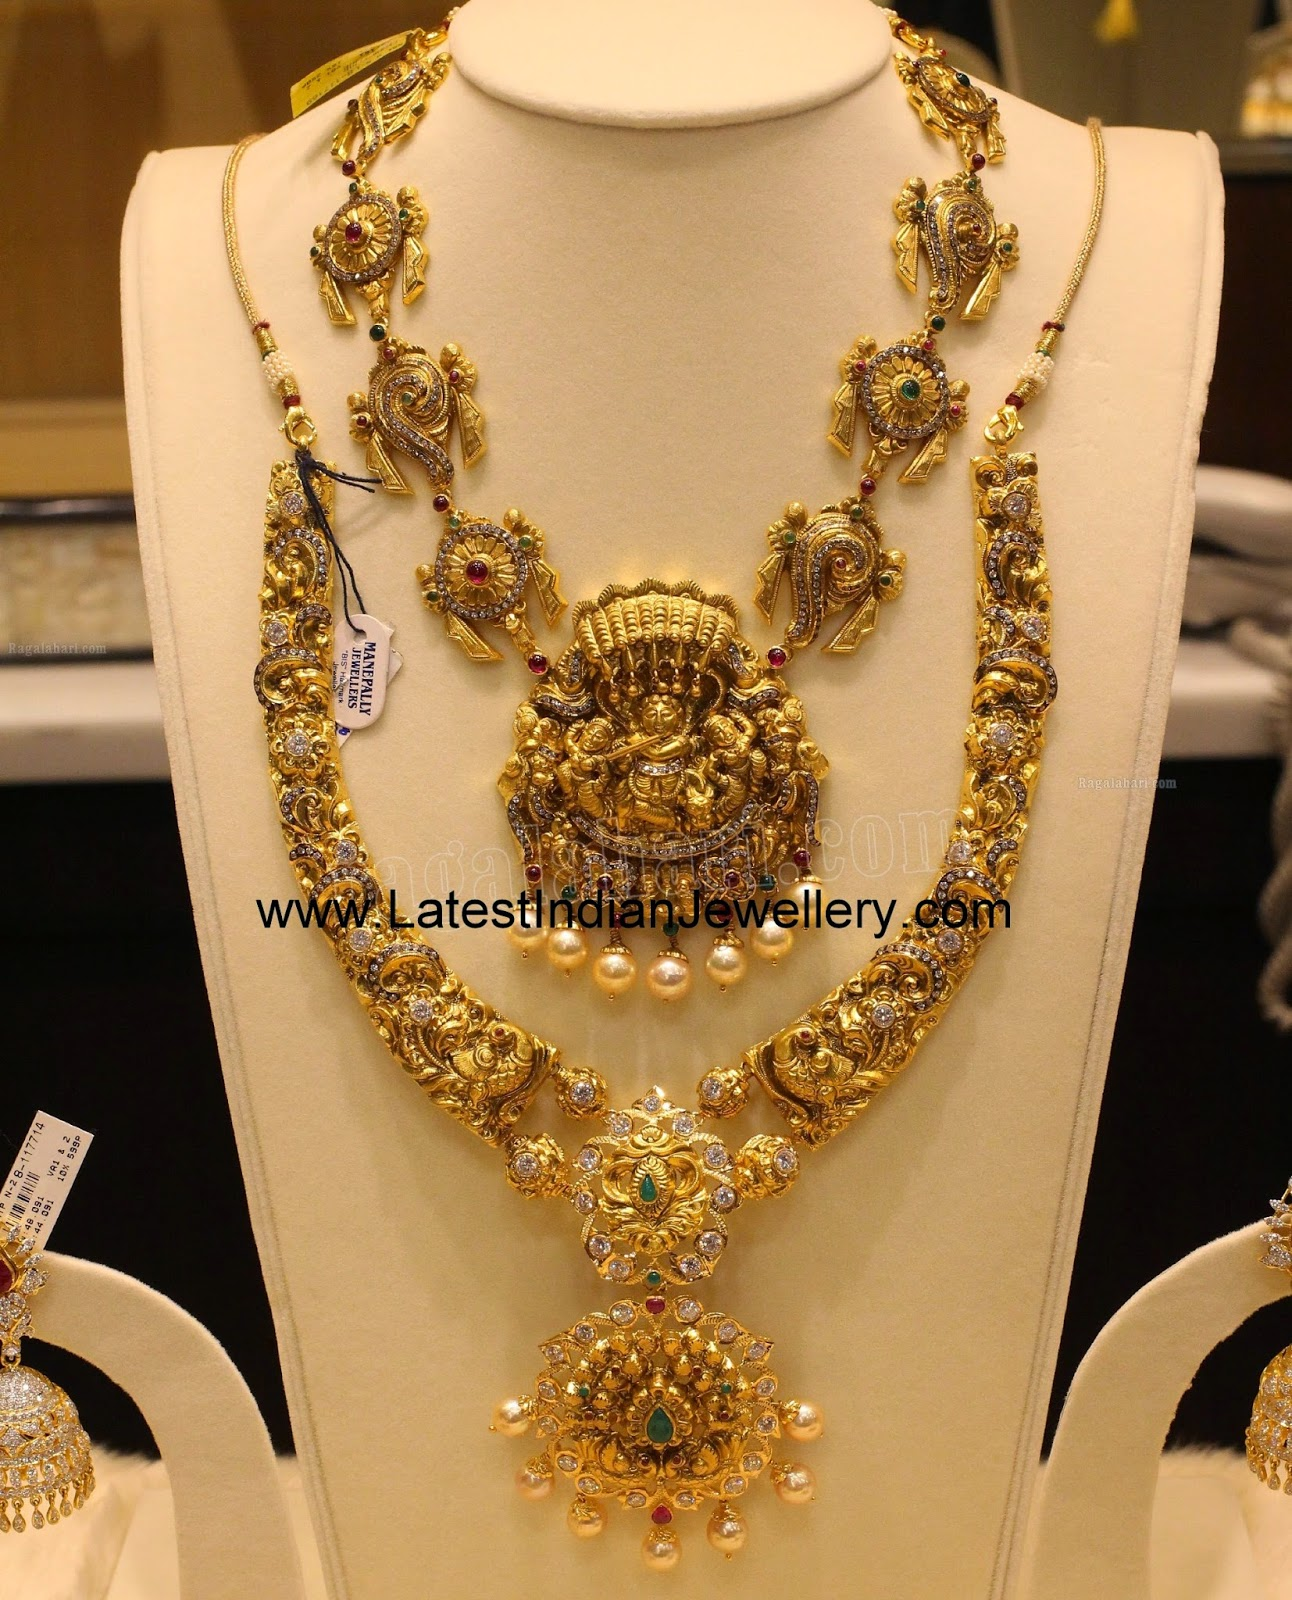 nakshi work gold temple jewellery